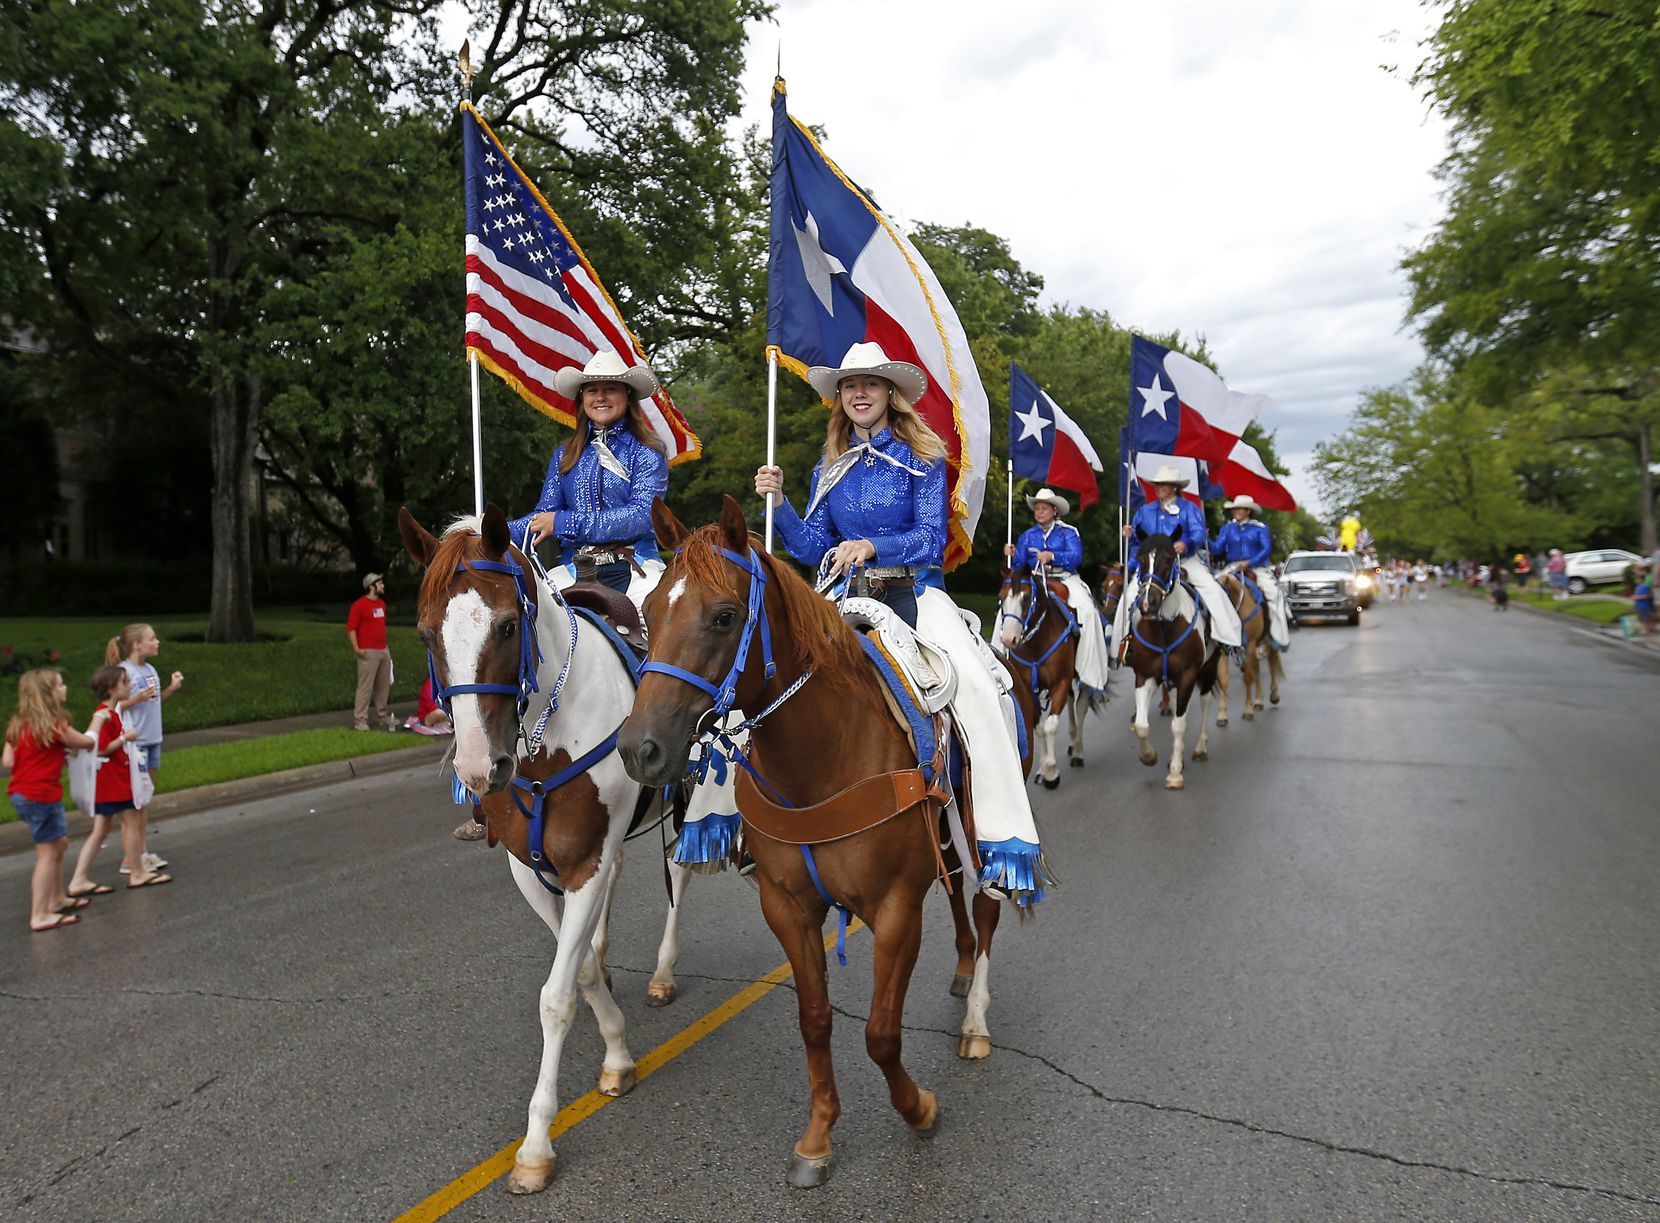 Parade participants will be back in the saddle for this year's Park Cities festivities, which kick off July 3. Last year's parade was among the many canceled.